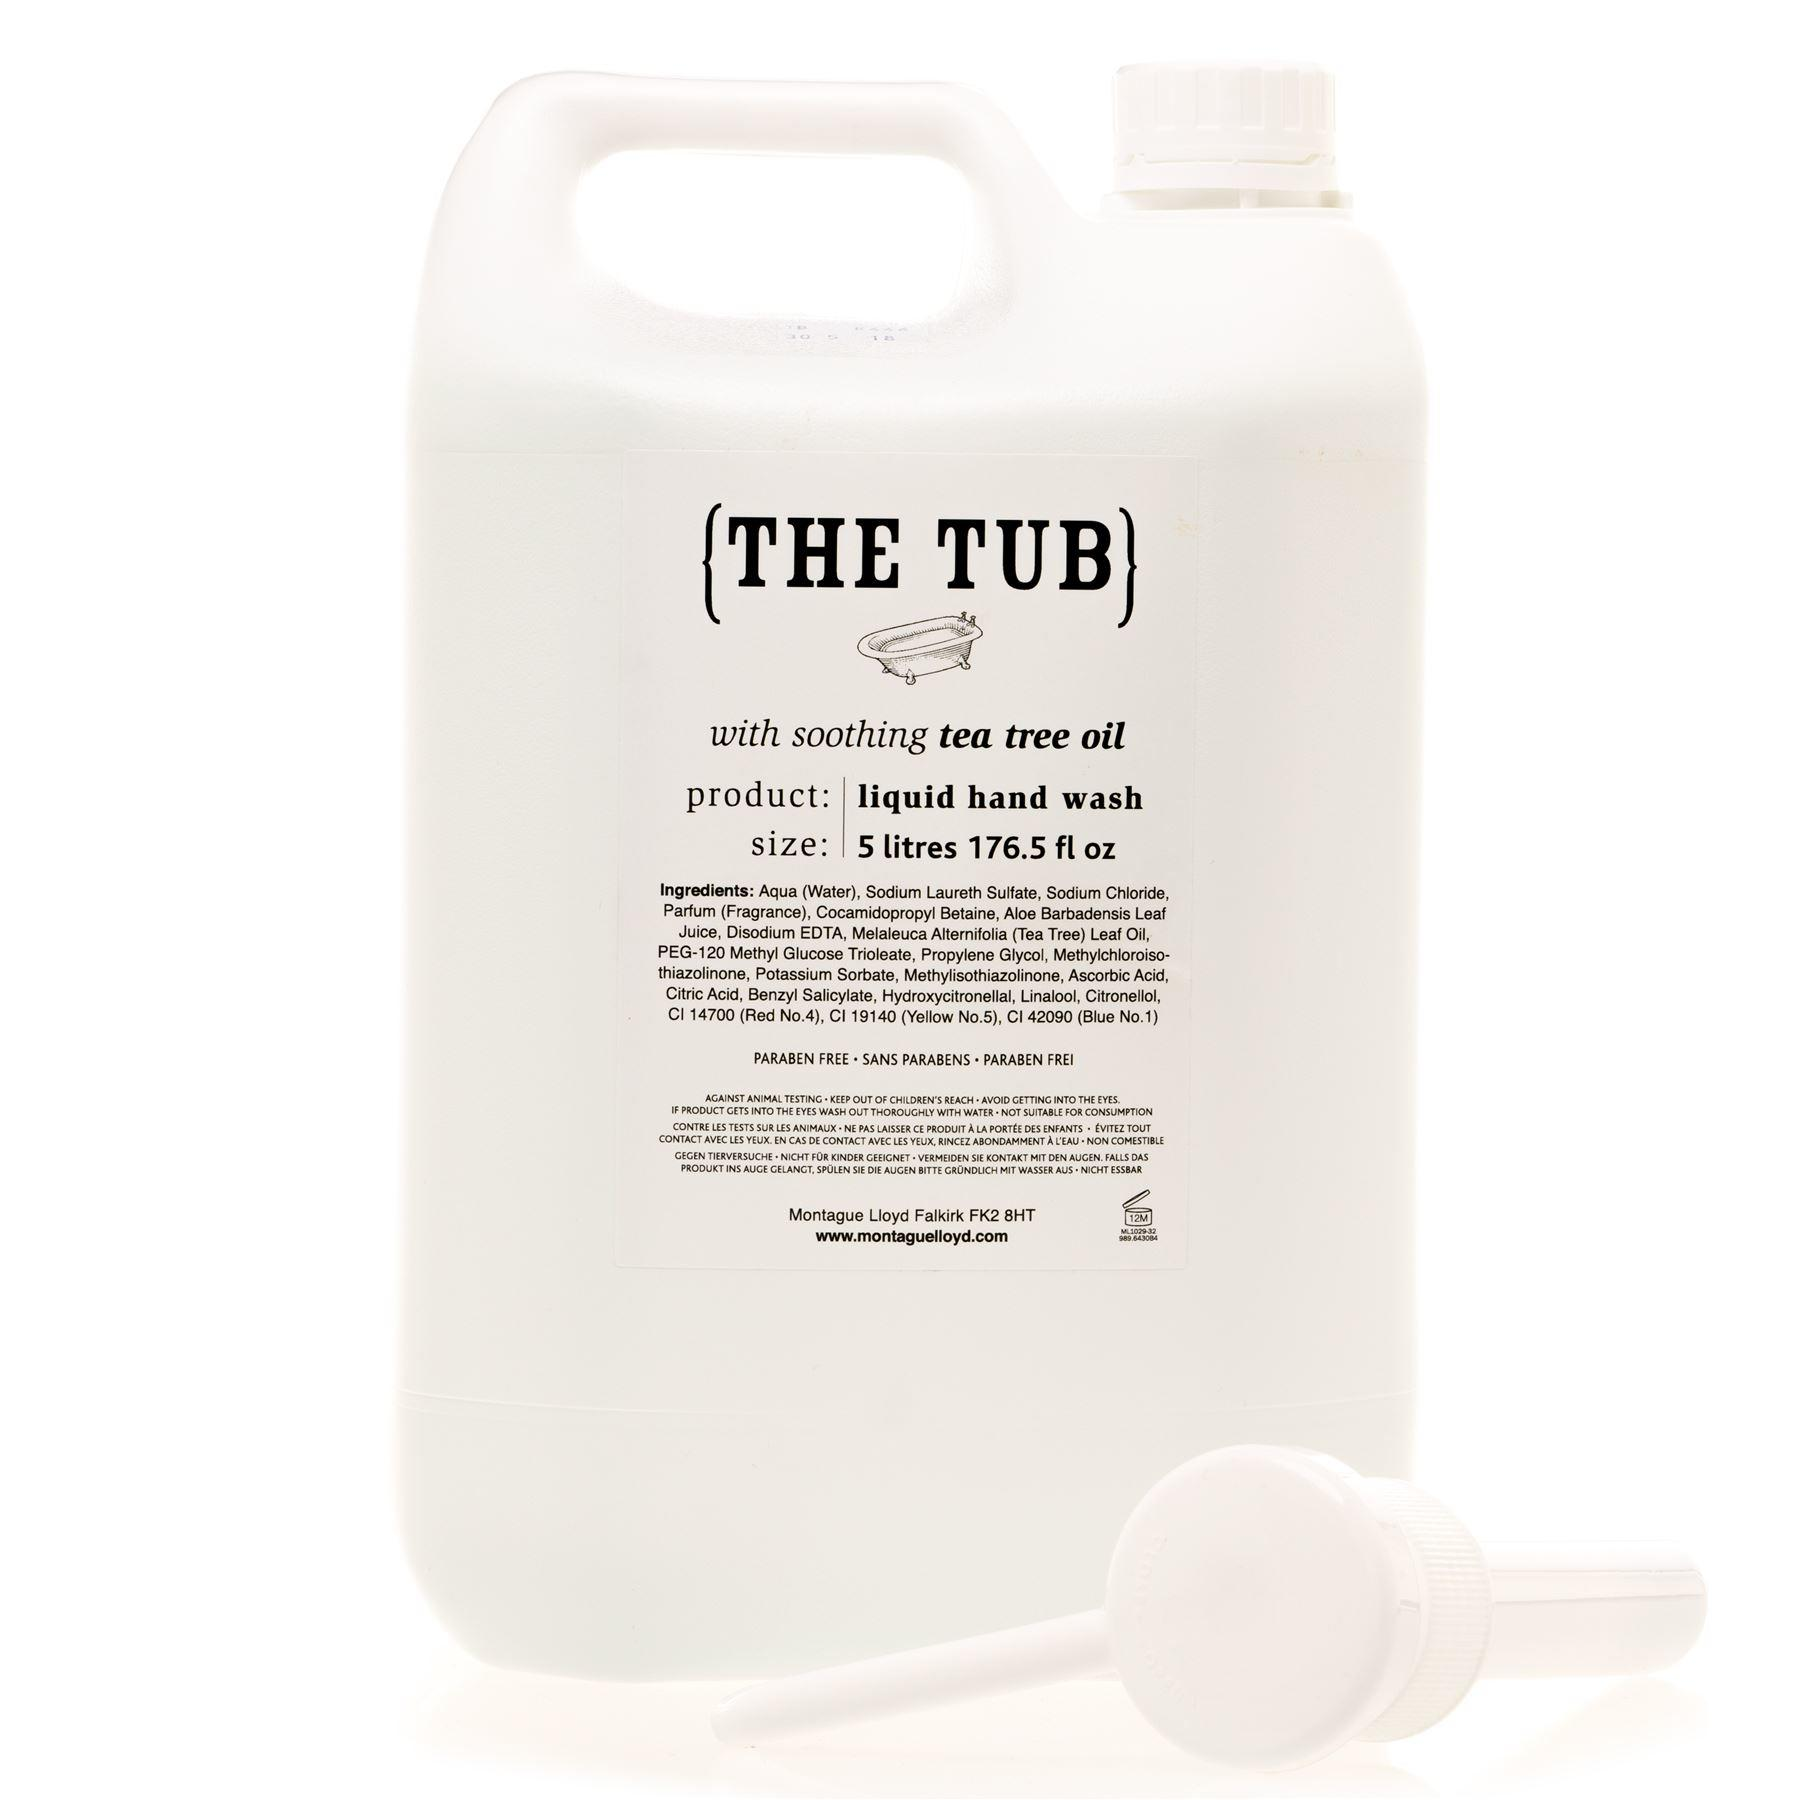 Montague Lloyd Commercial 'The Tub' Soothing Tea Tree Oil Hand Wash Refill with Pump Dispenser